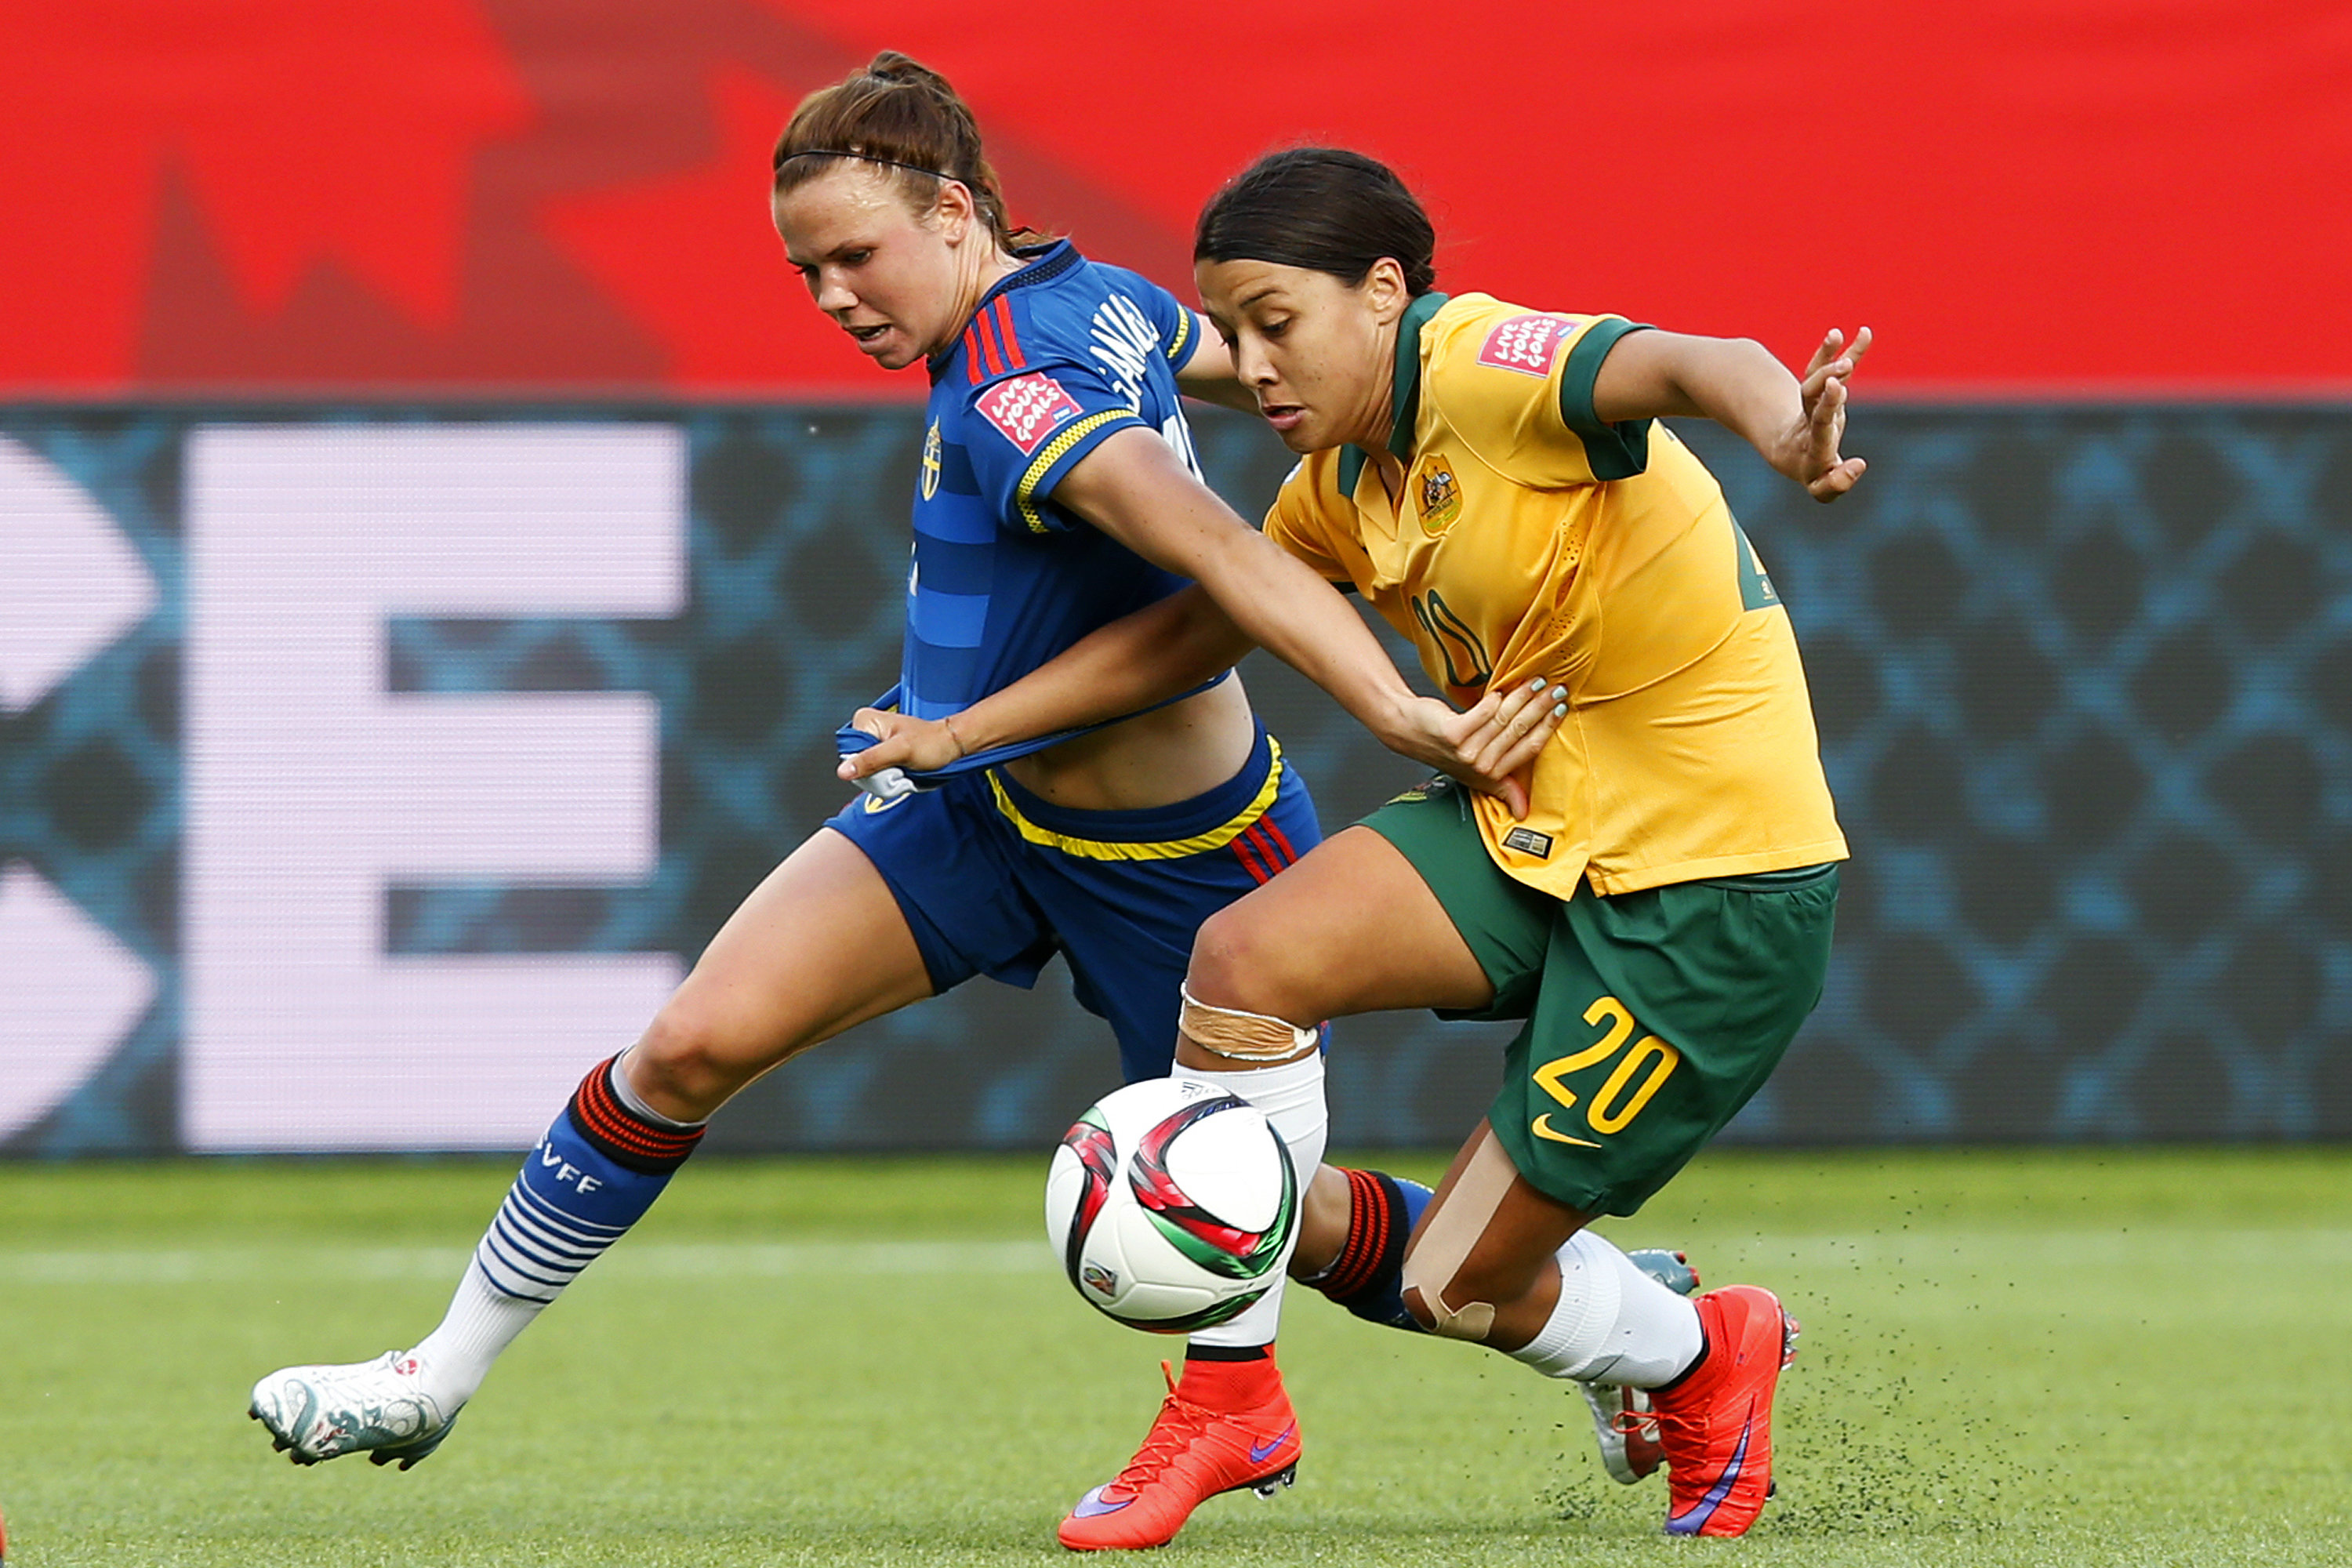 Countdown to the Women's World Cup: 12 days to go